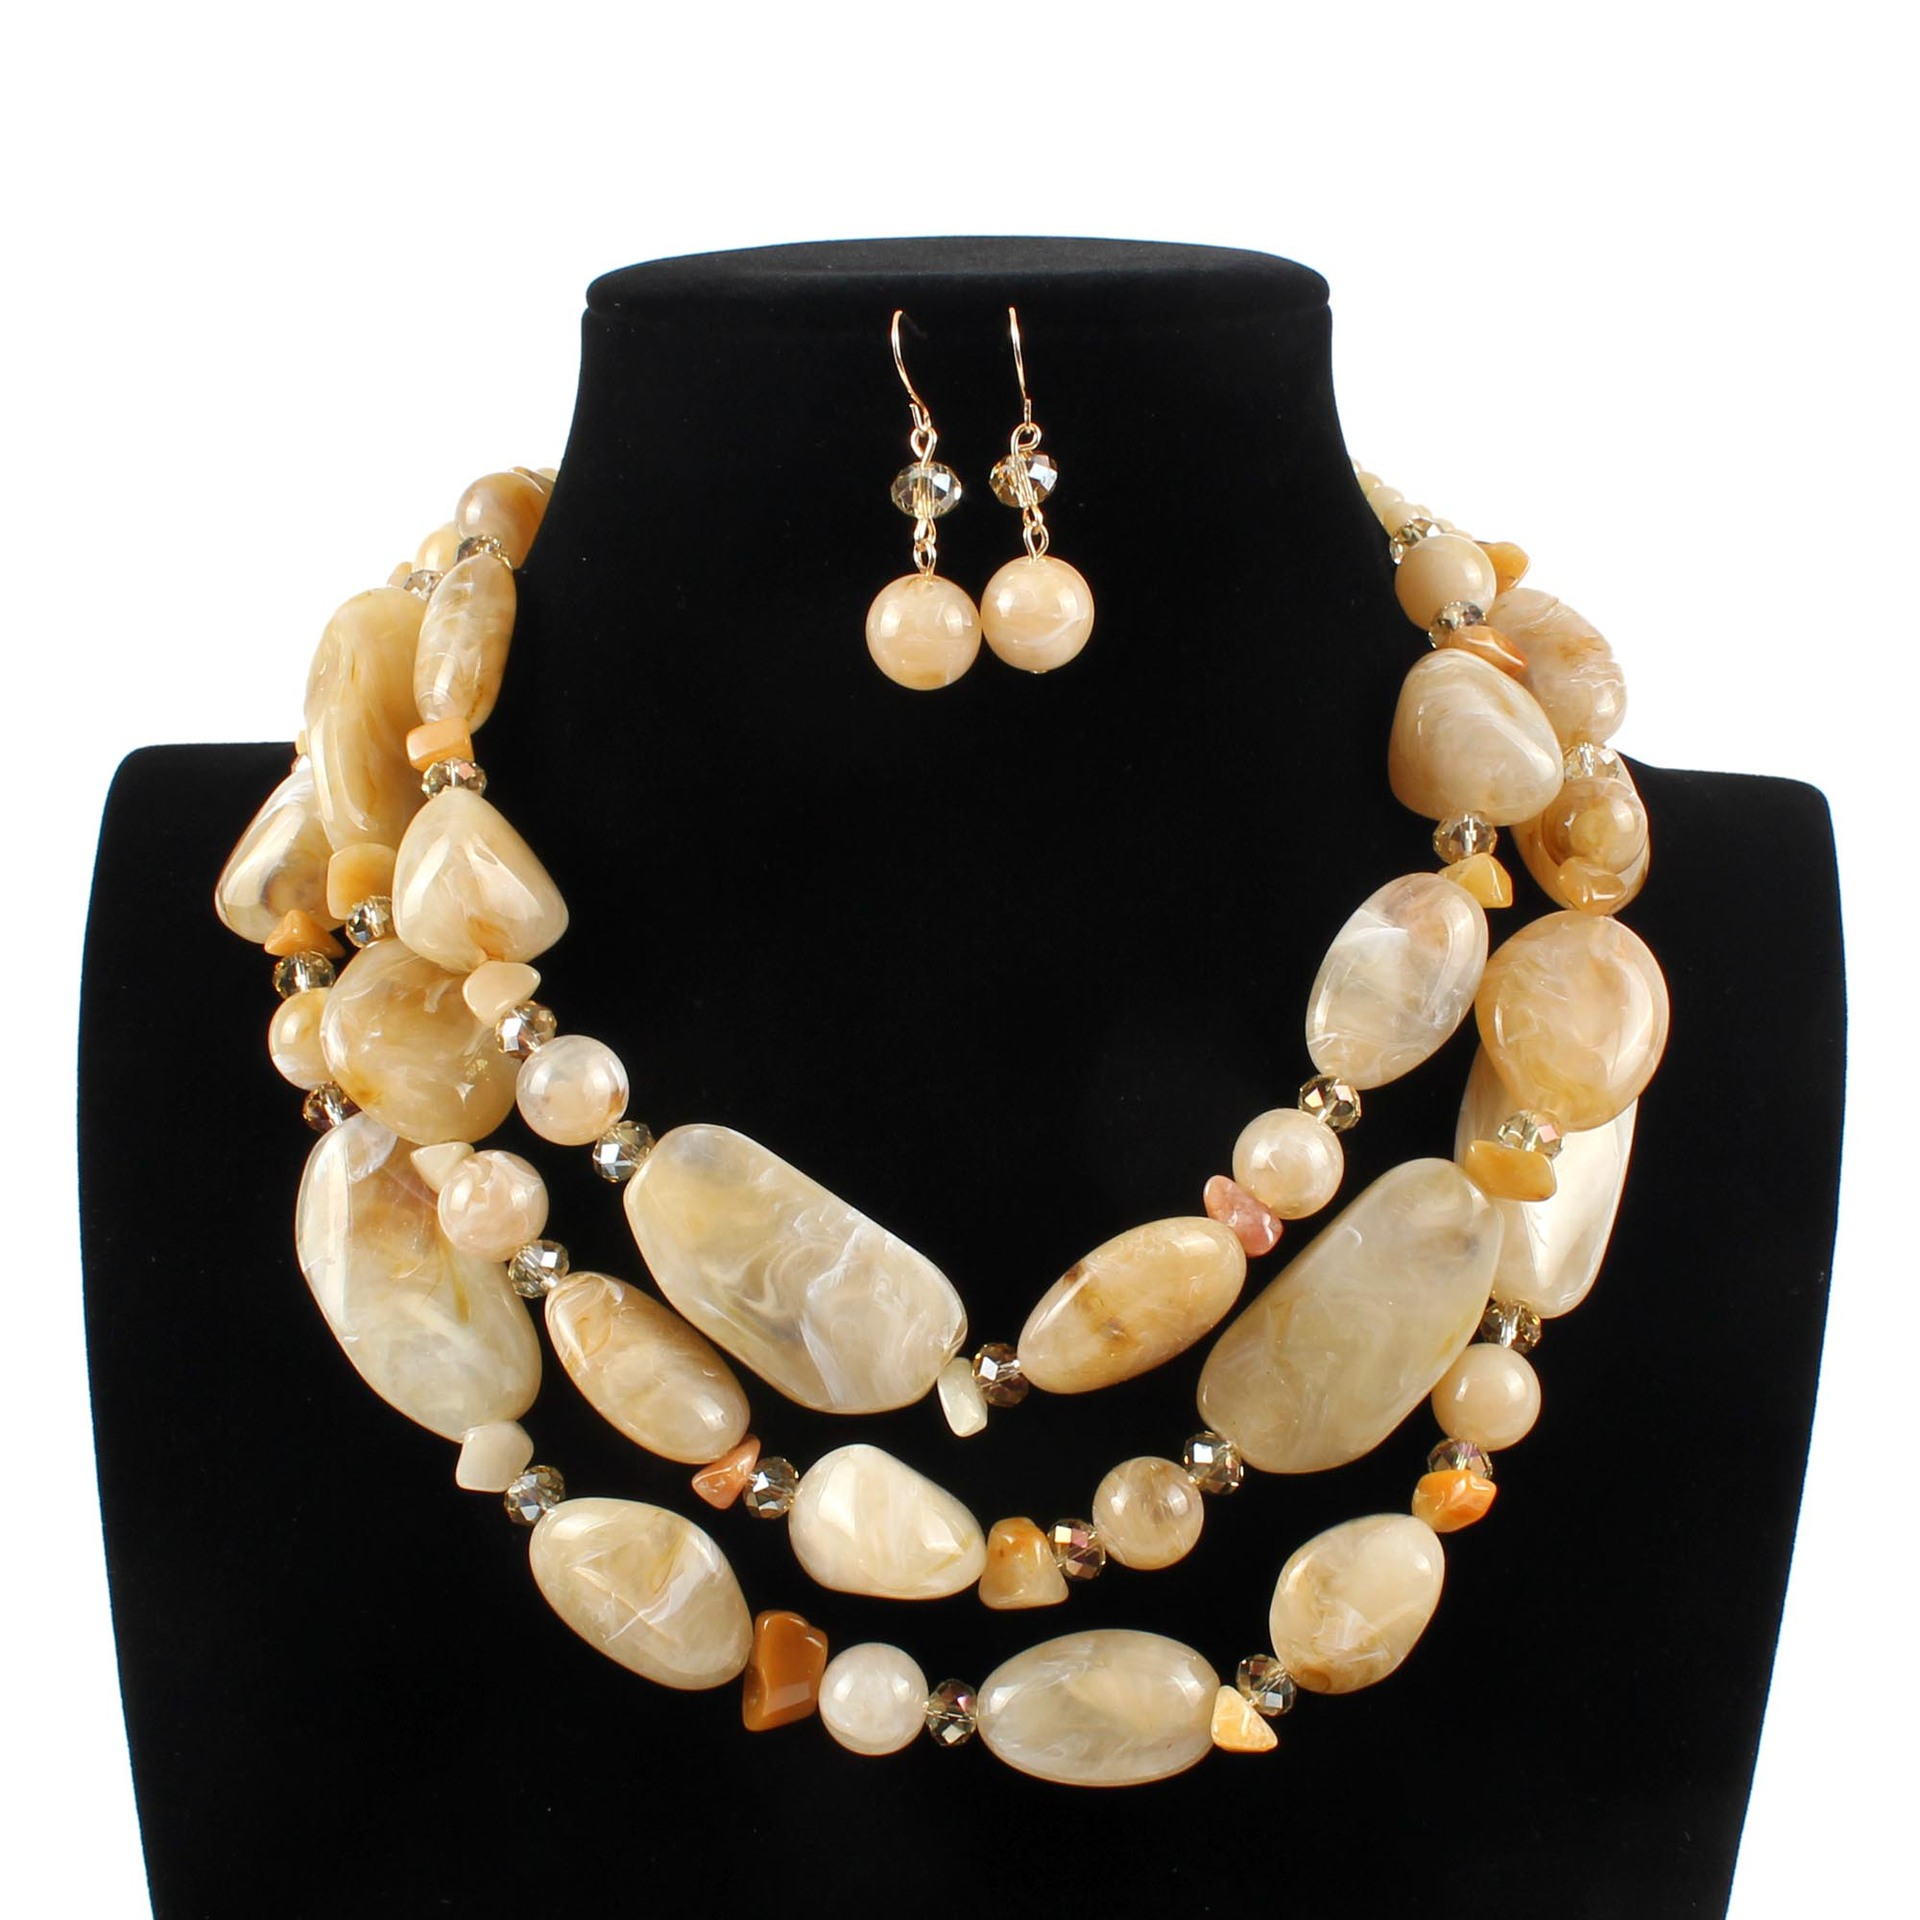 Wholesale Lots New Strand Beaded Resin Crystal Geometric Necklace Earrings Exaggerated Multi Layer Bohemian Jewelry Sets Women graceful exaggerated rhinestone geometric necklace for women